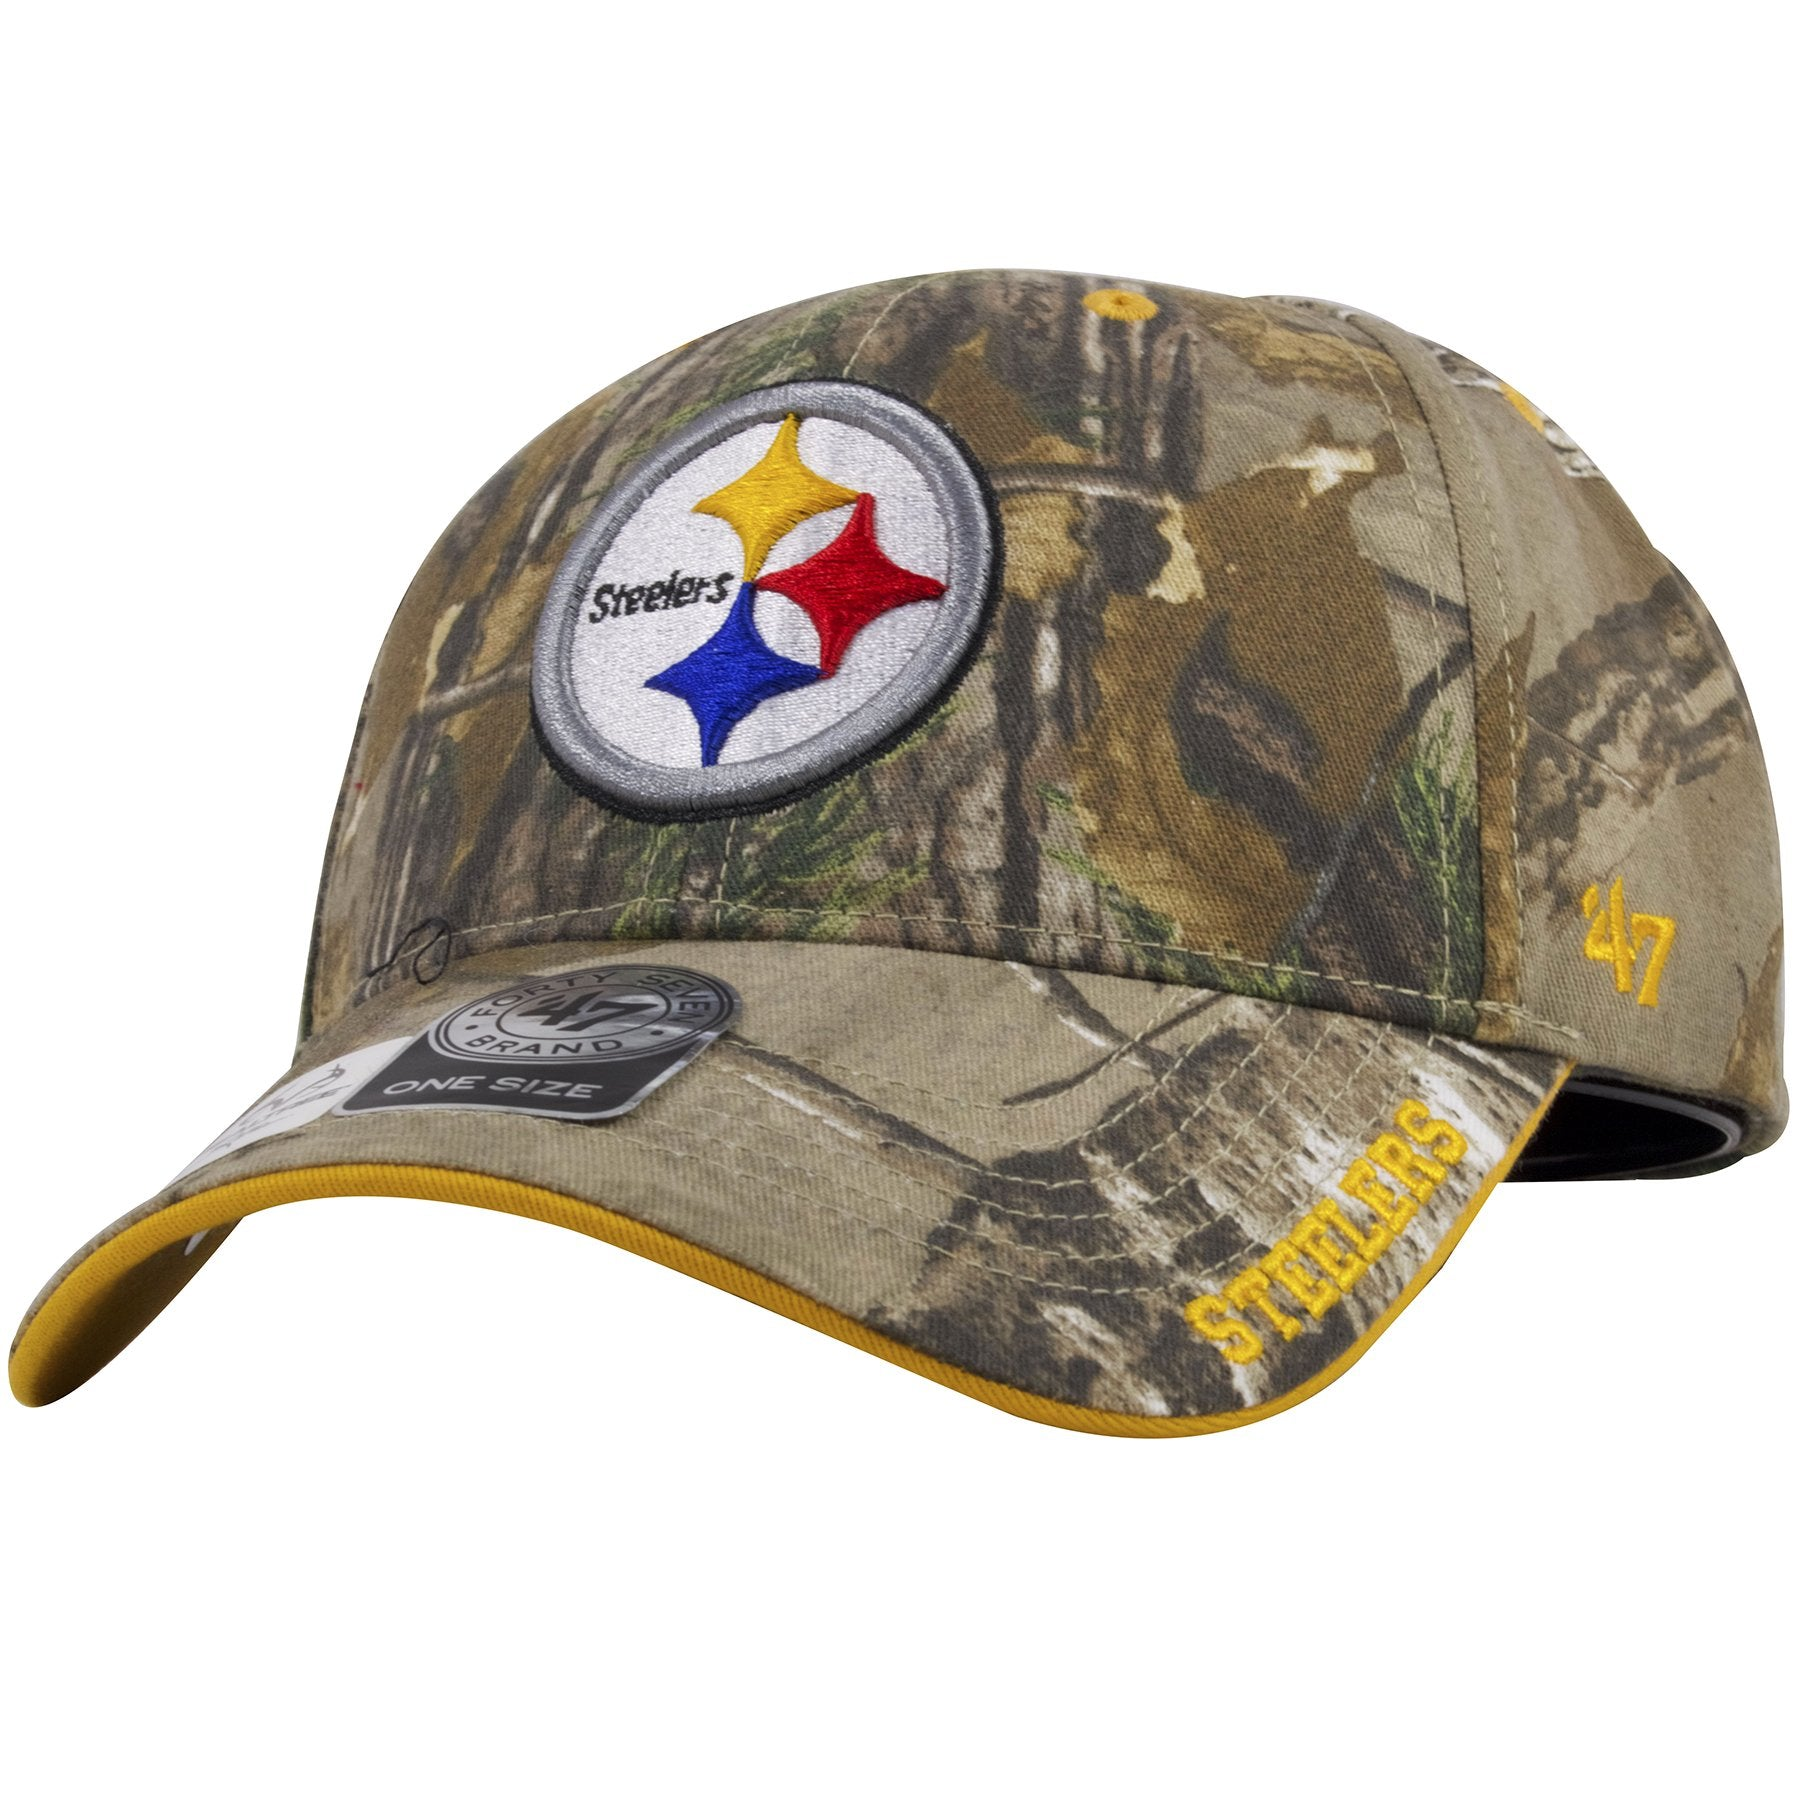 ... dad hat has the Steelers logo heavily embroidered in  The Steelers word  mark can be seen on the left side of the bill of this ... 2dd0f492dd7c